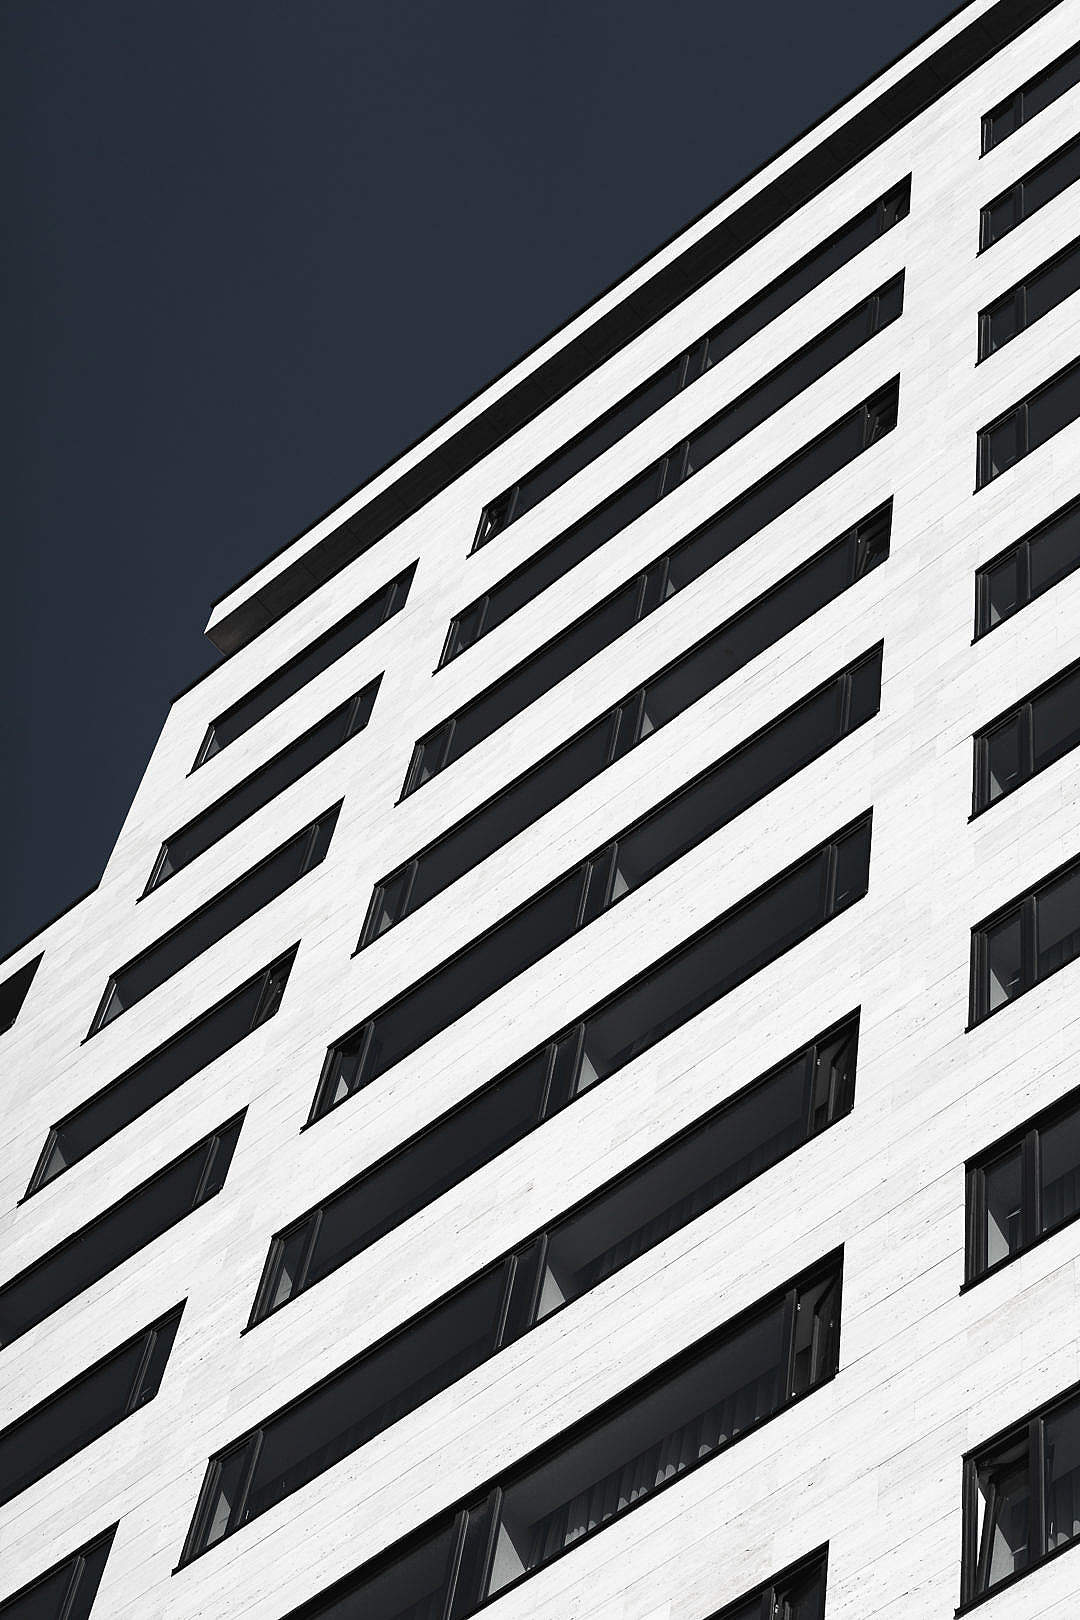 Download Modern Office Building FREE Stock Photo